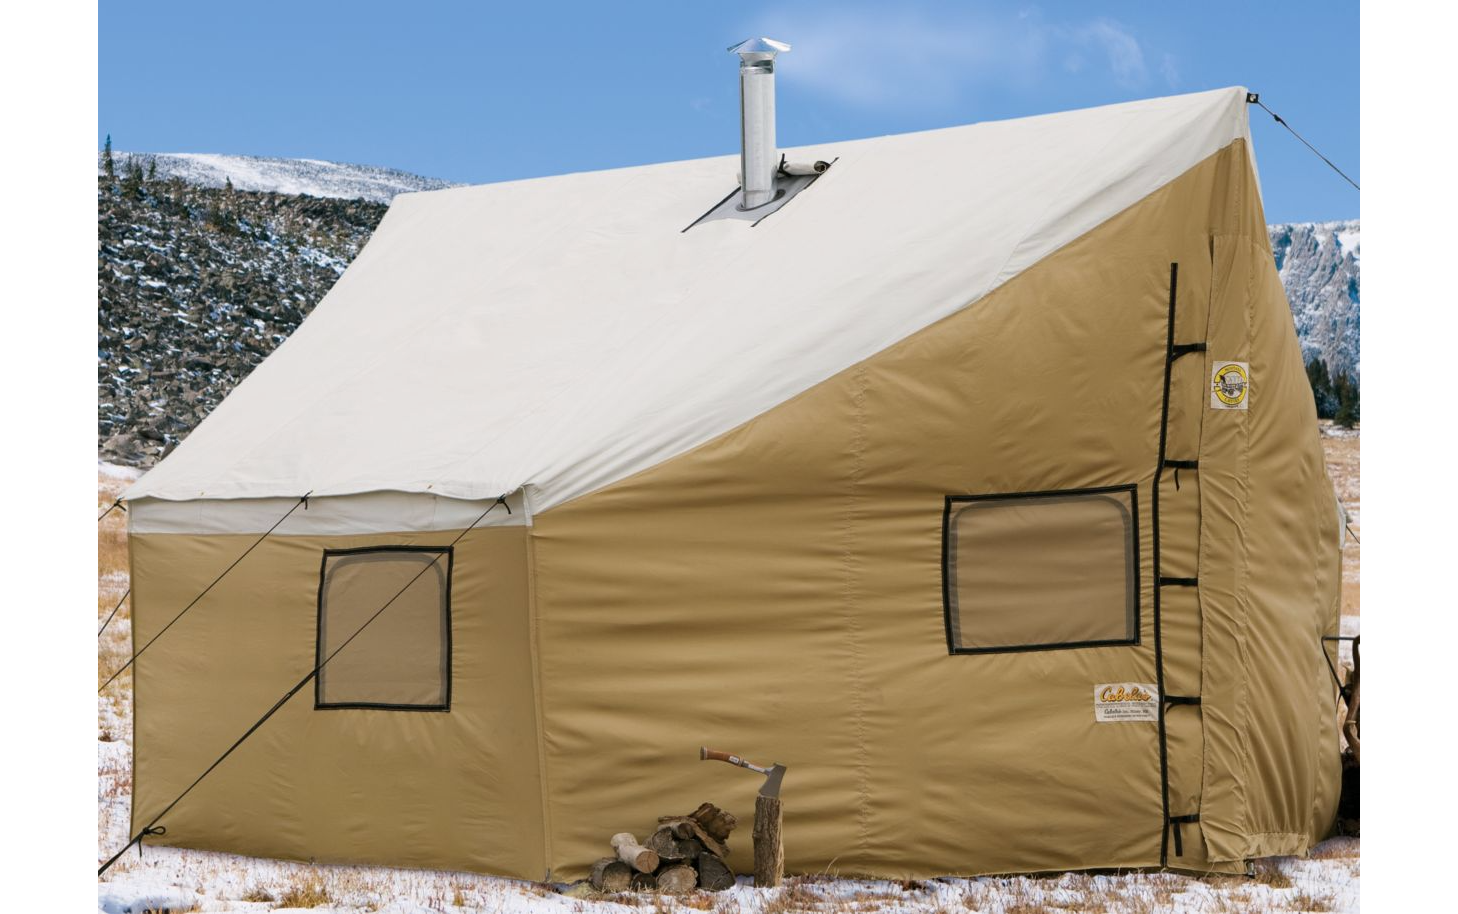 elk hunting tent & Best Hunting Tent: Our Top 6 Recommendations - Good Game Hunting